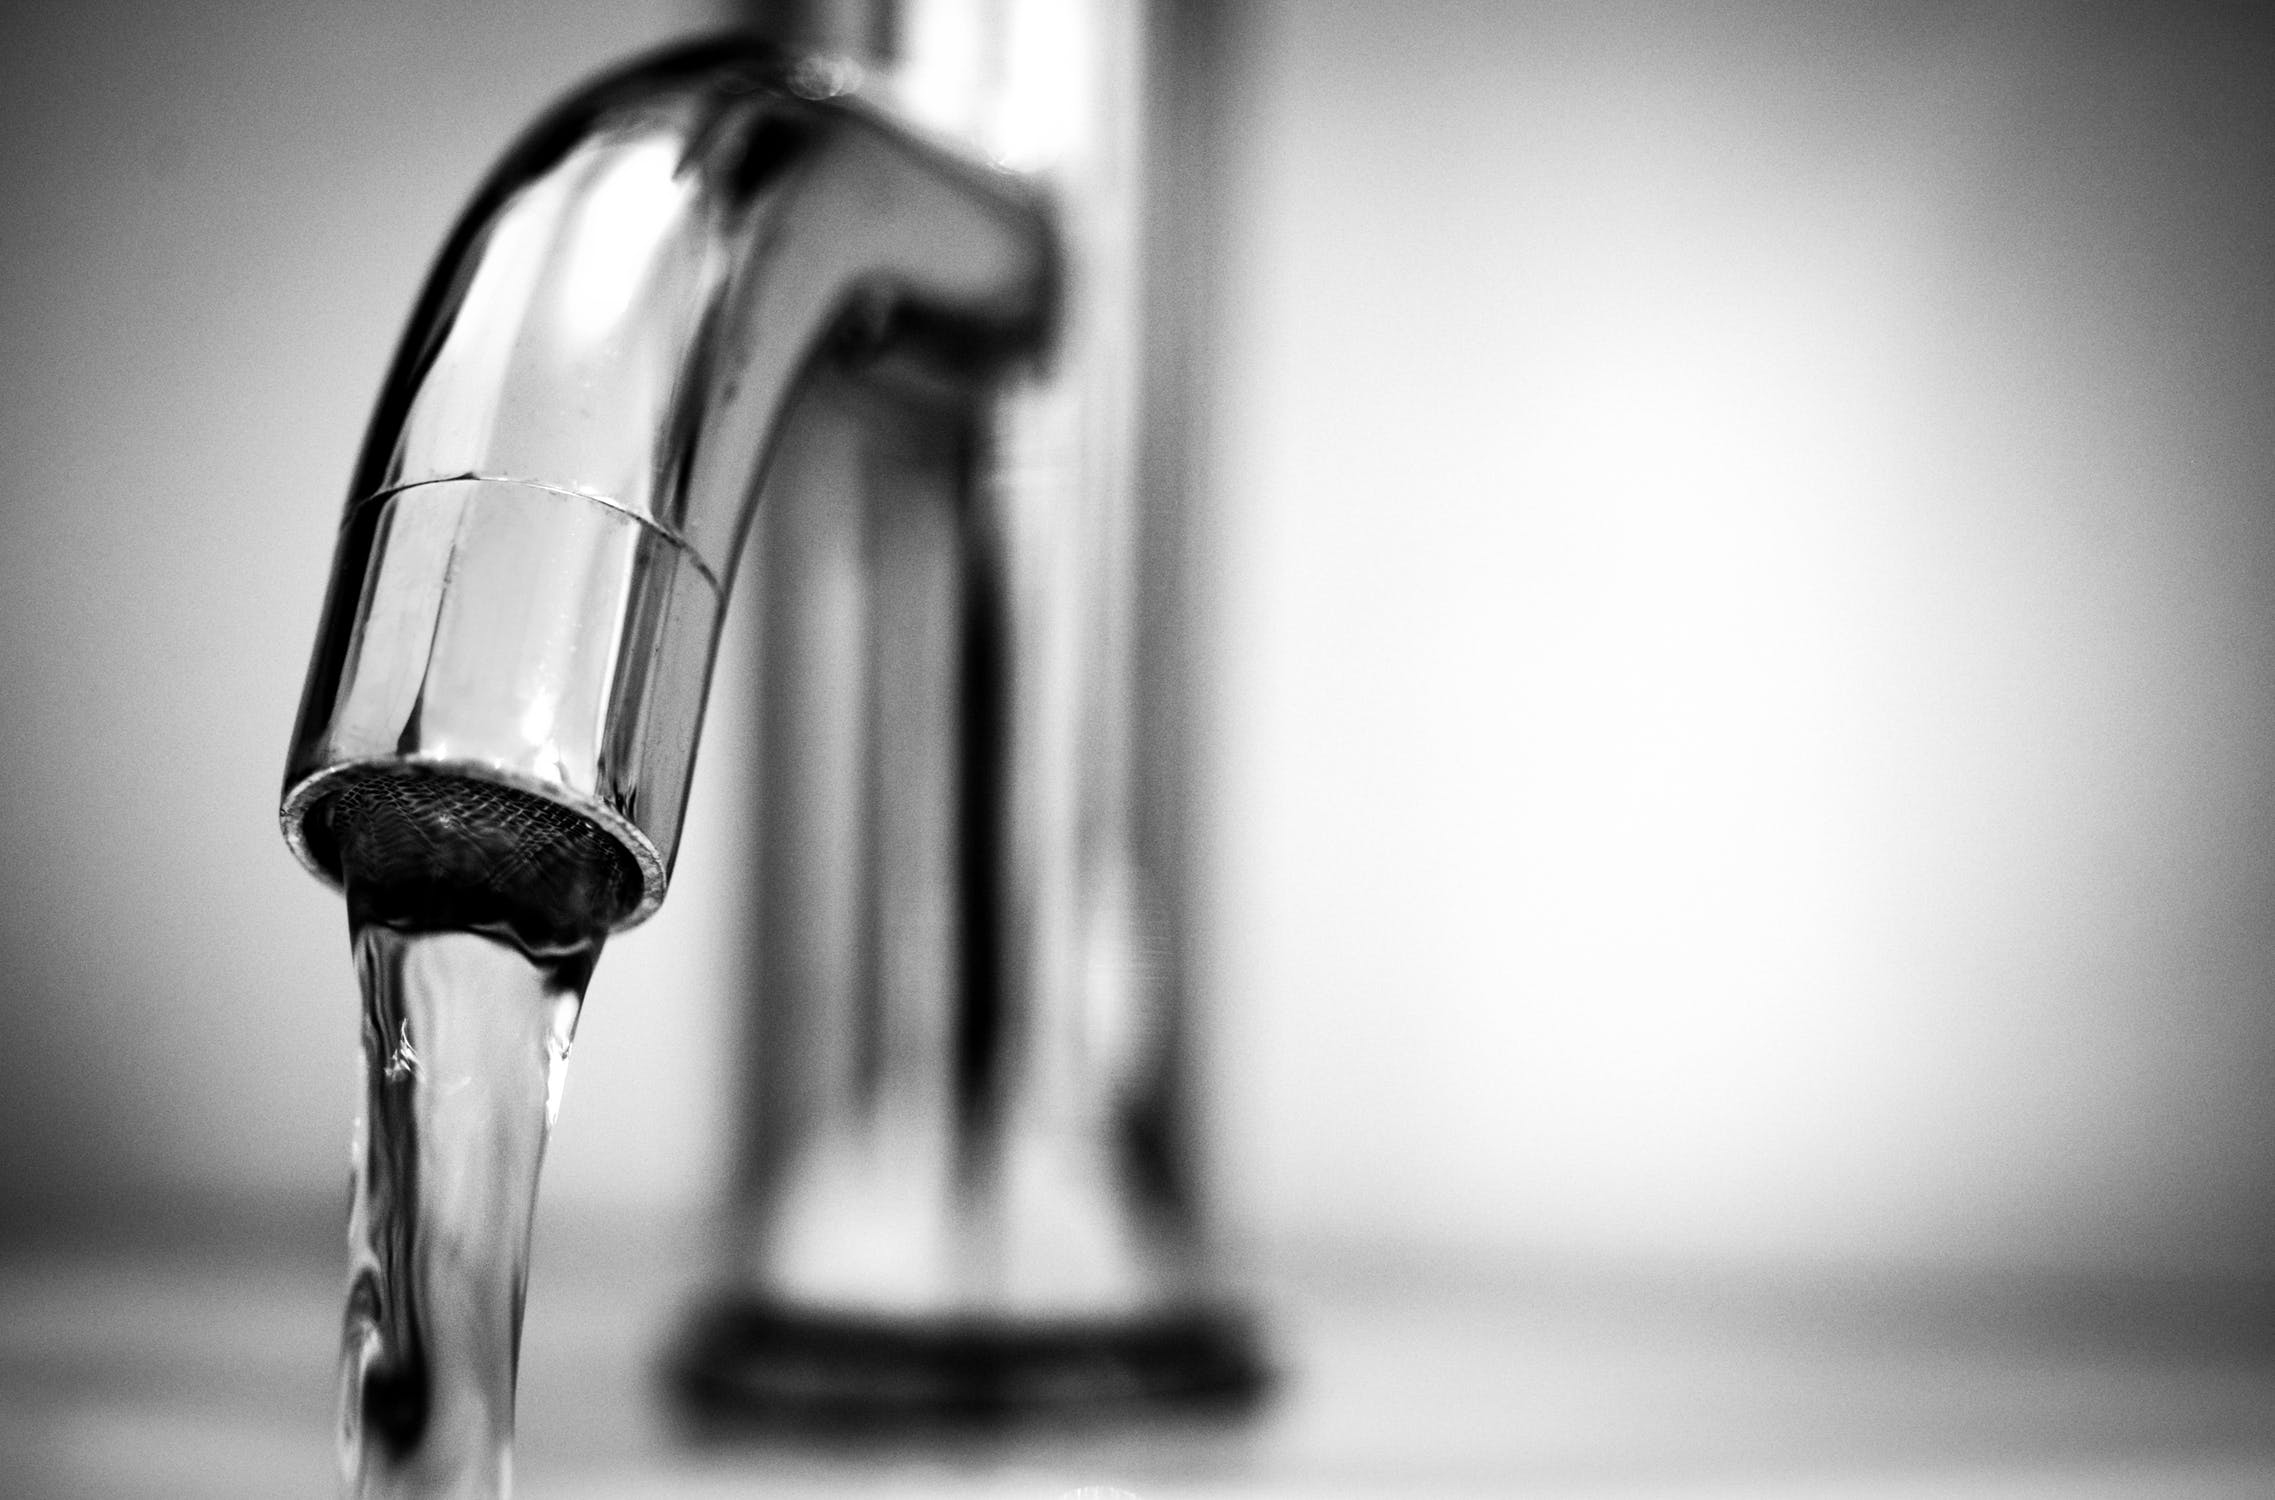 water-tap-black-and-white-macro-615326-1